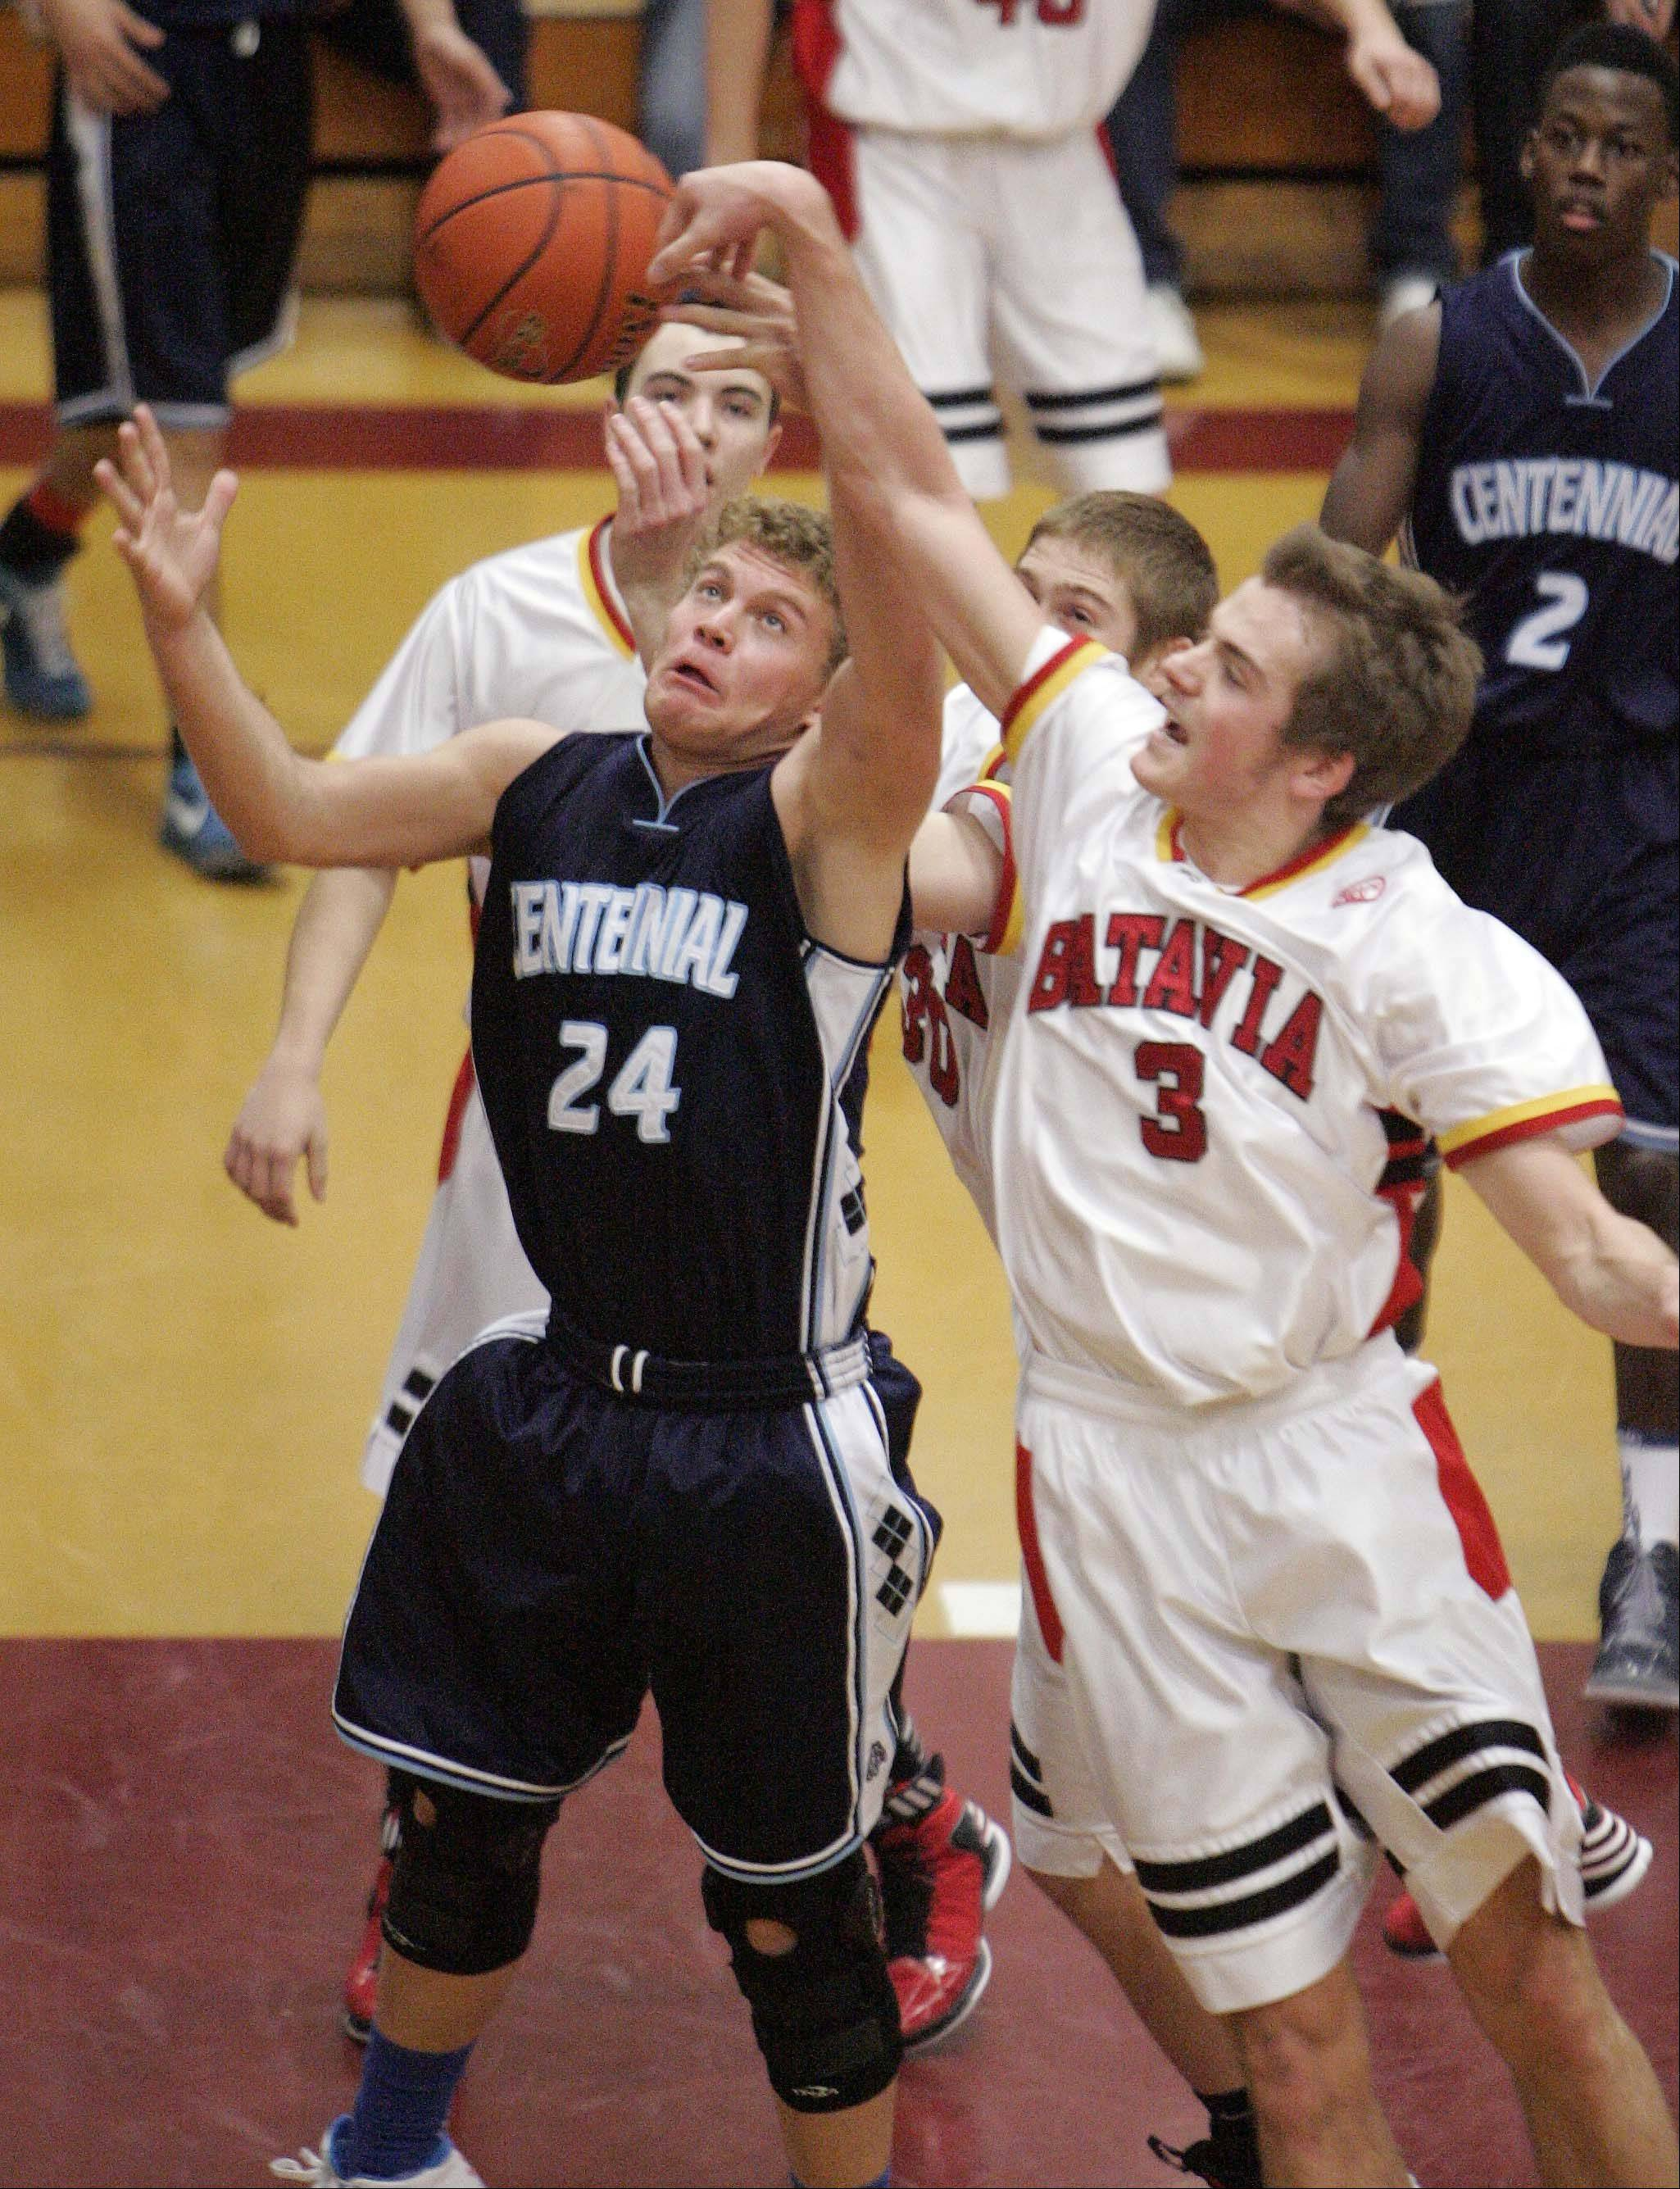 Batavia guard Jake Pollack, 3, knocks a rebound from the hands of Las Vegas Centennial's Austin Turley, 24, during the third place game of the 38th Annual Elgin Boys Holiday Basketball Tournament on Saturday in Elgin.